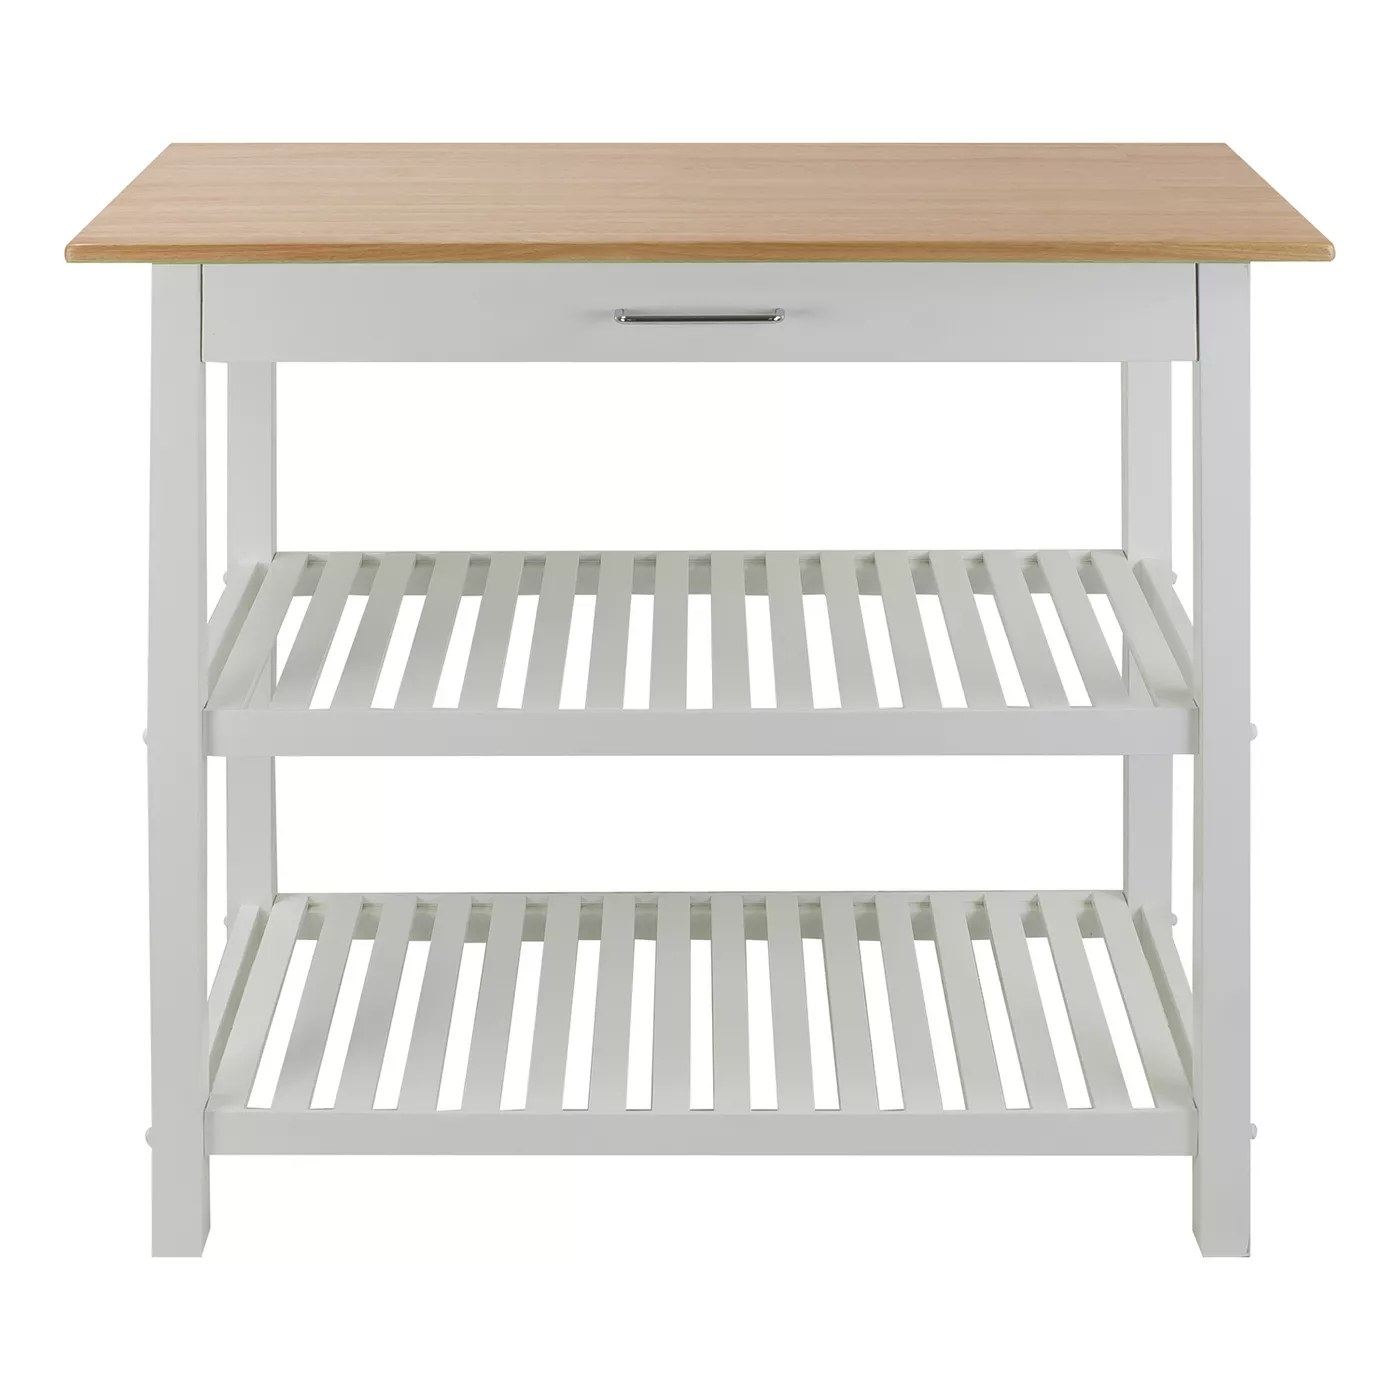 The white kitchen island with a wood top